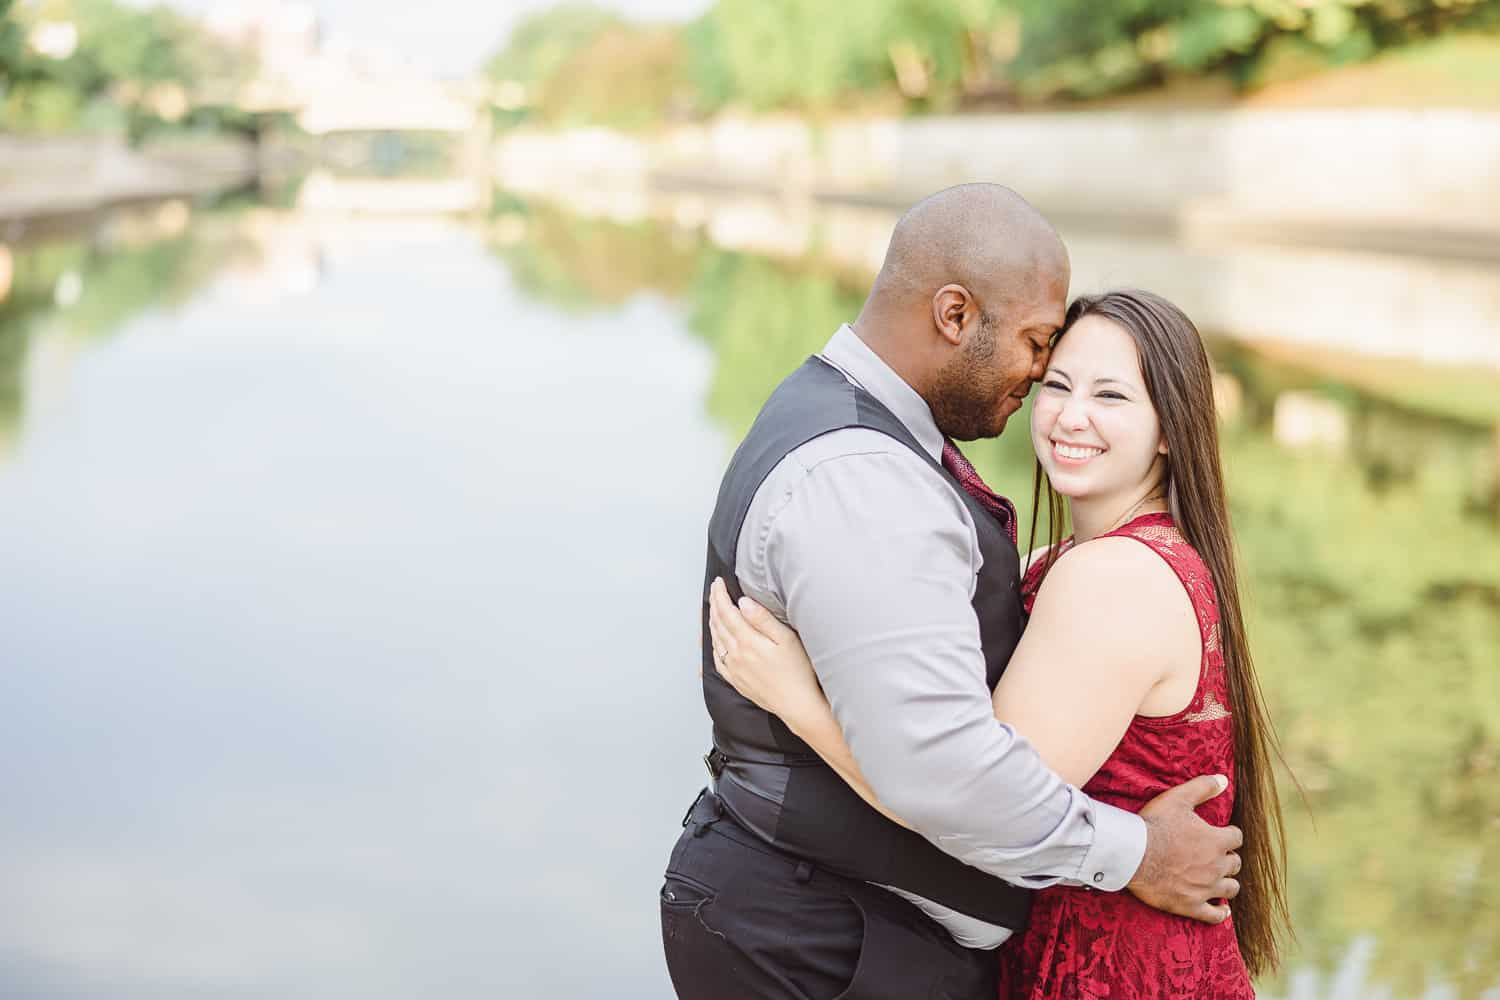 The Plaza engagement session